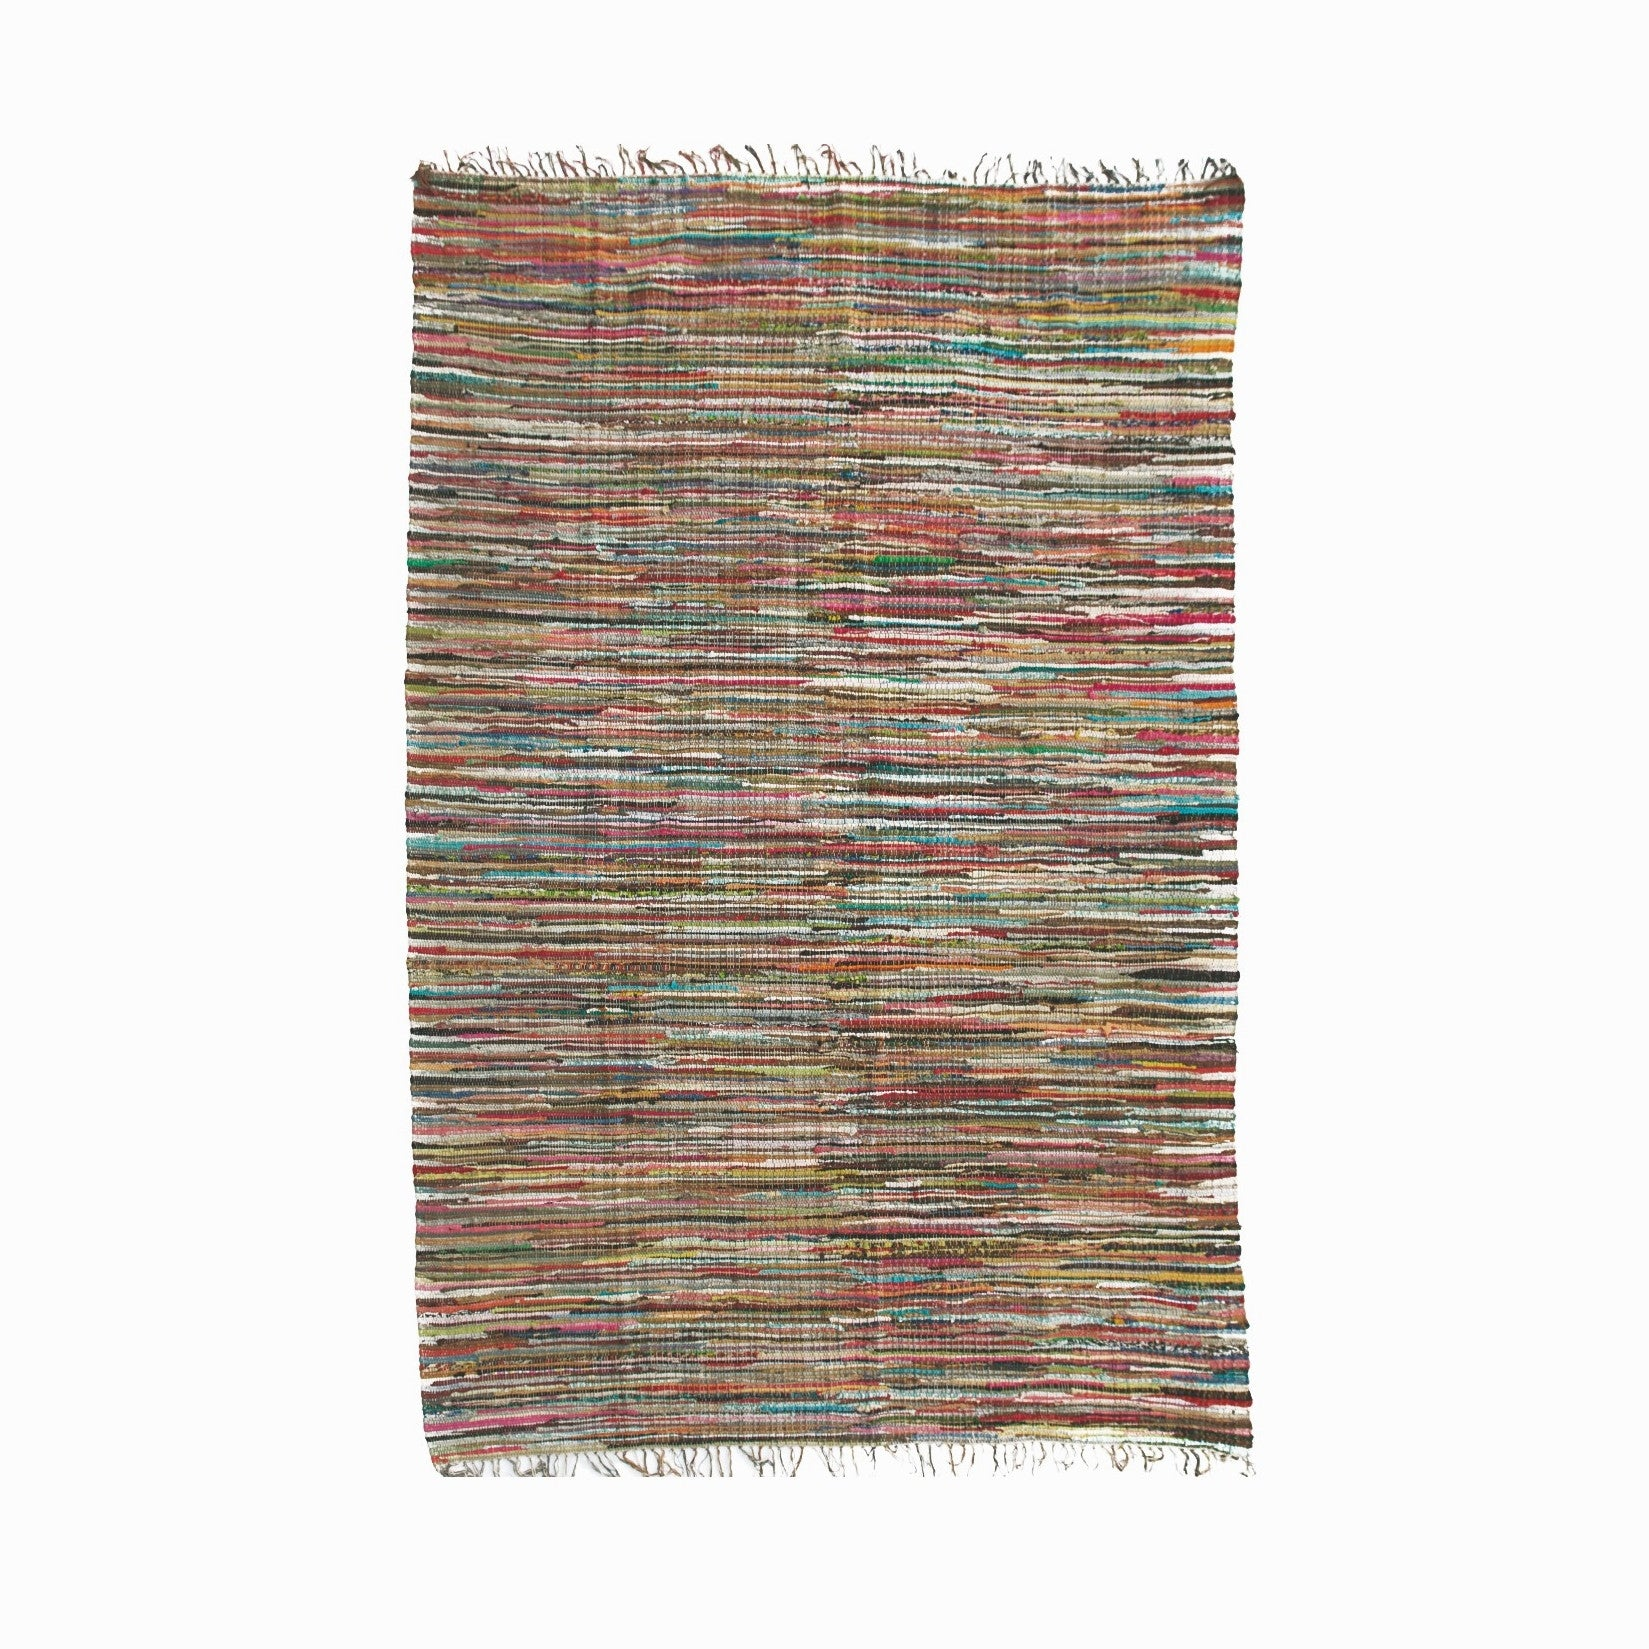 Large Rag Rugs For Sale Uk: Various Sizes Available – Ian